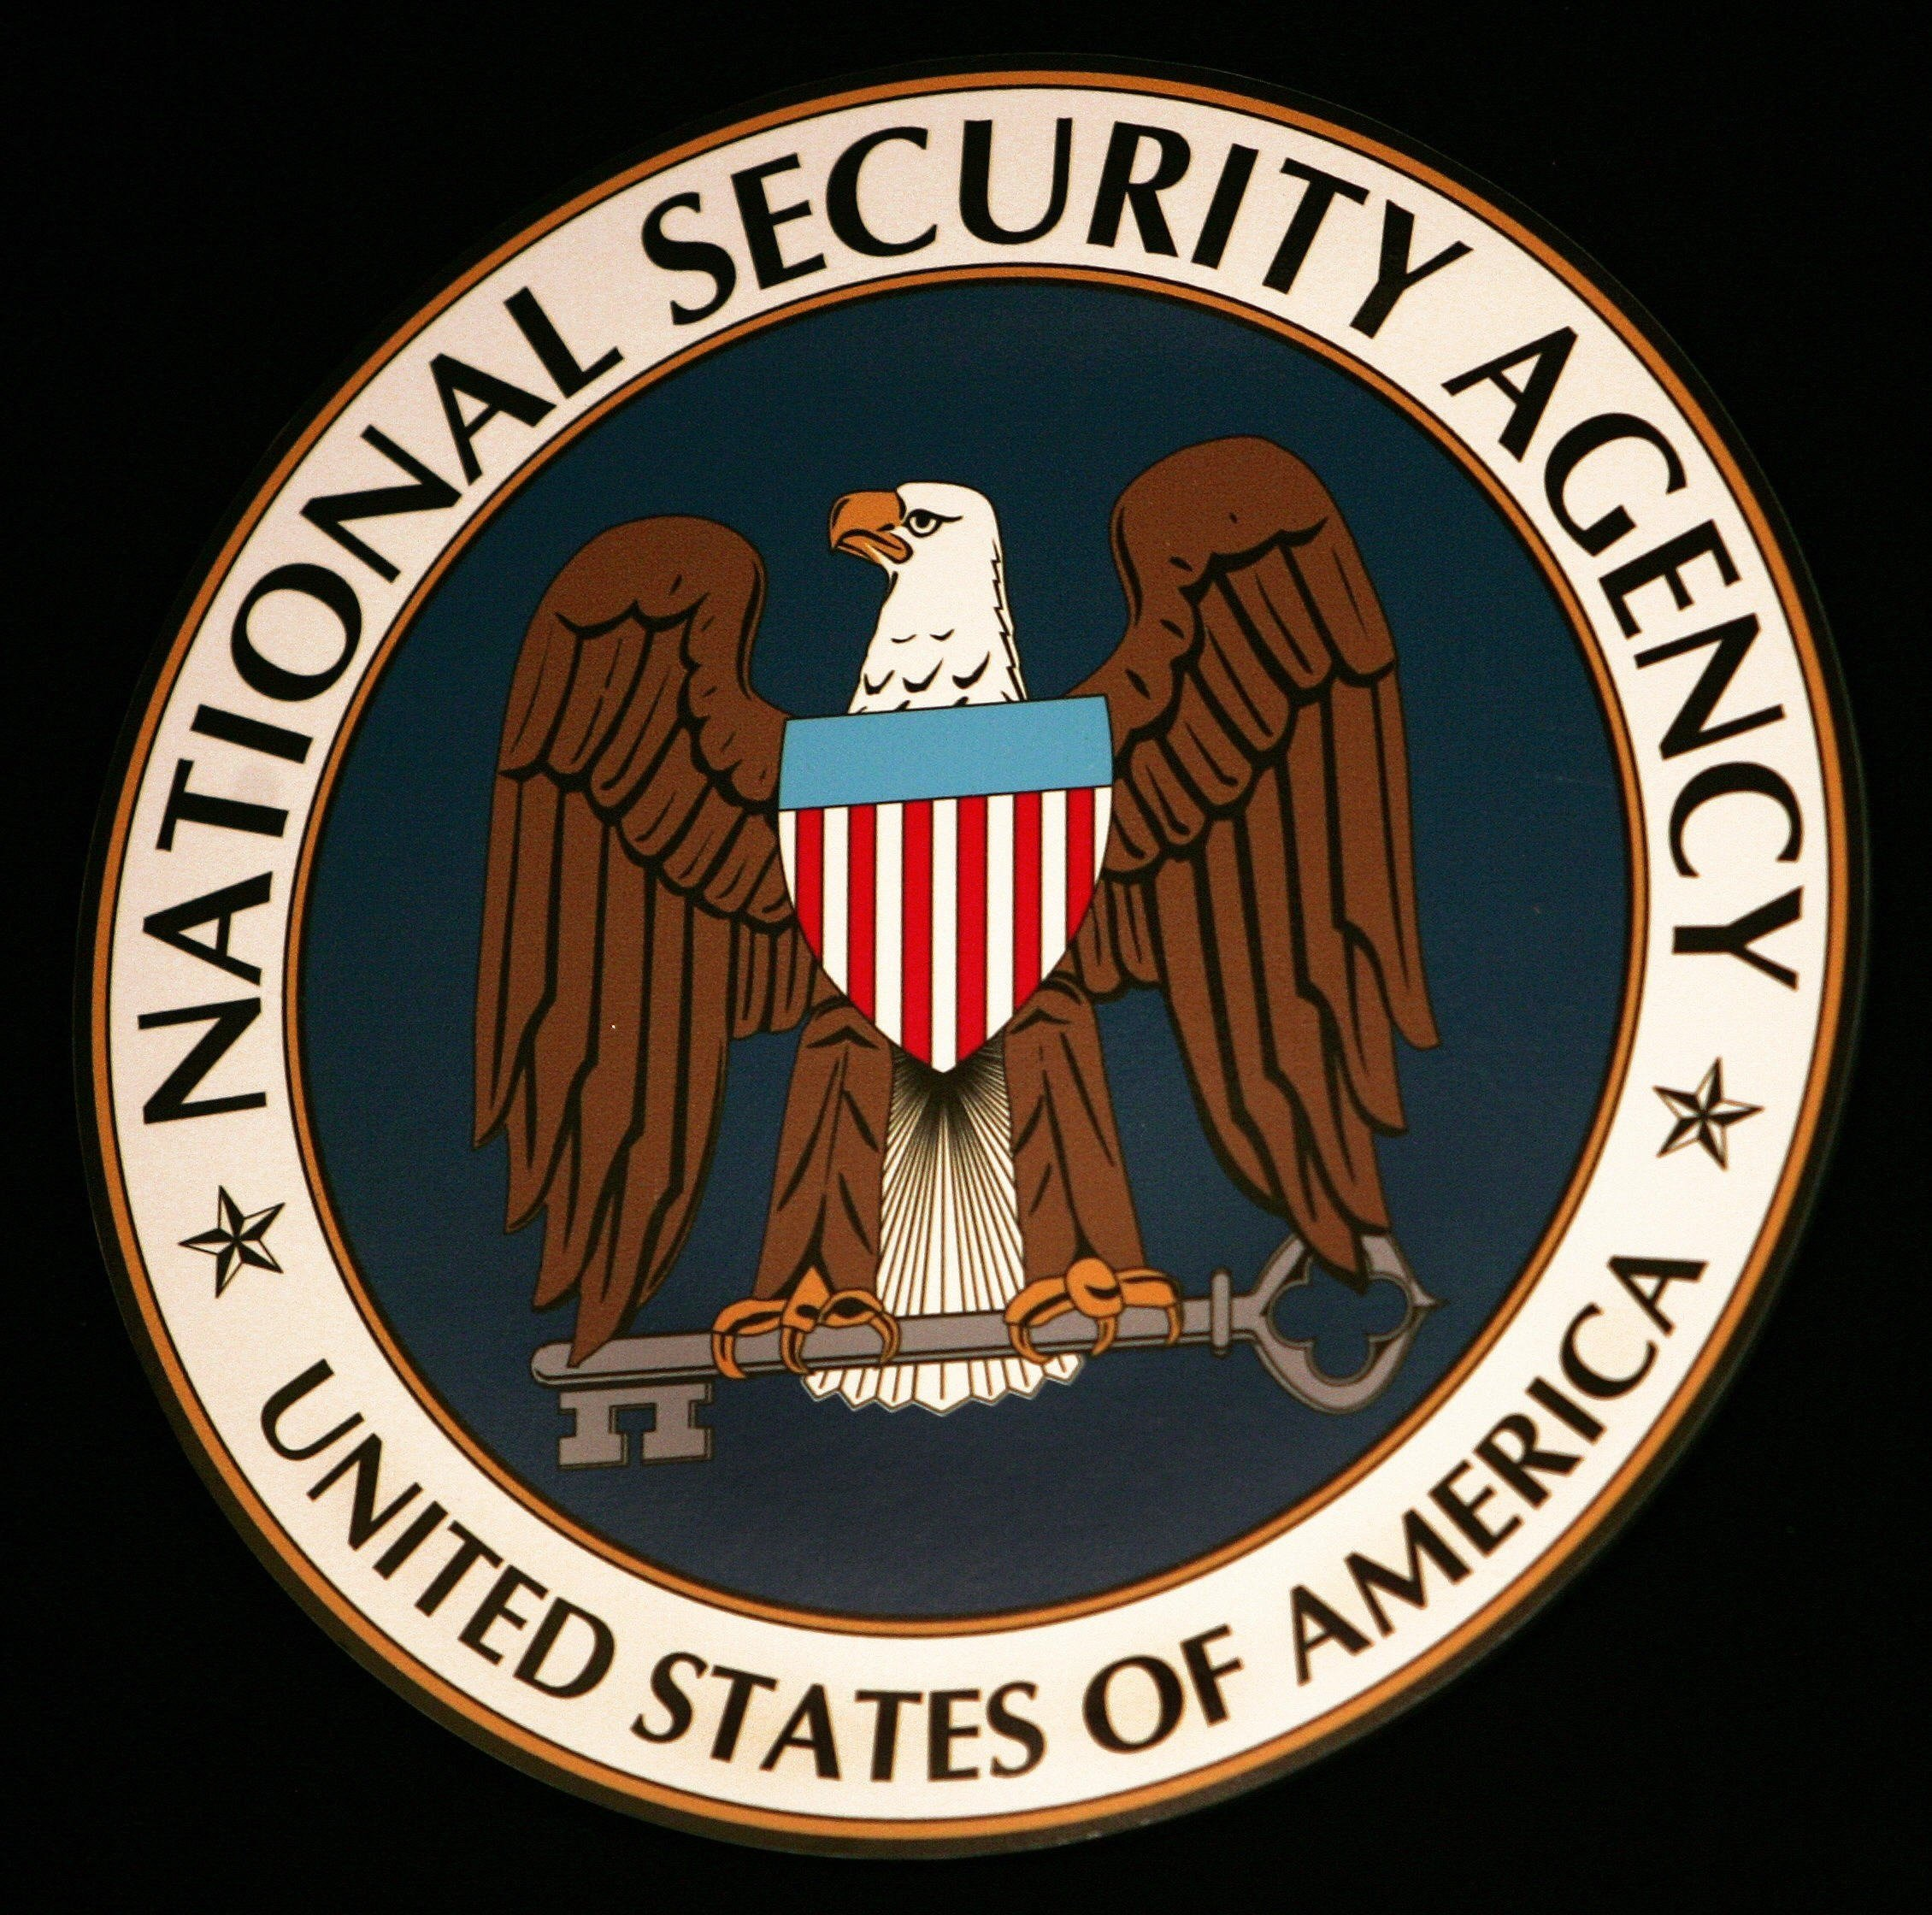 Nghia Hoang Pho, former NSA employee, pleads guilty to retaining top-secret intelligence